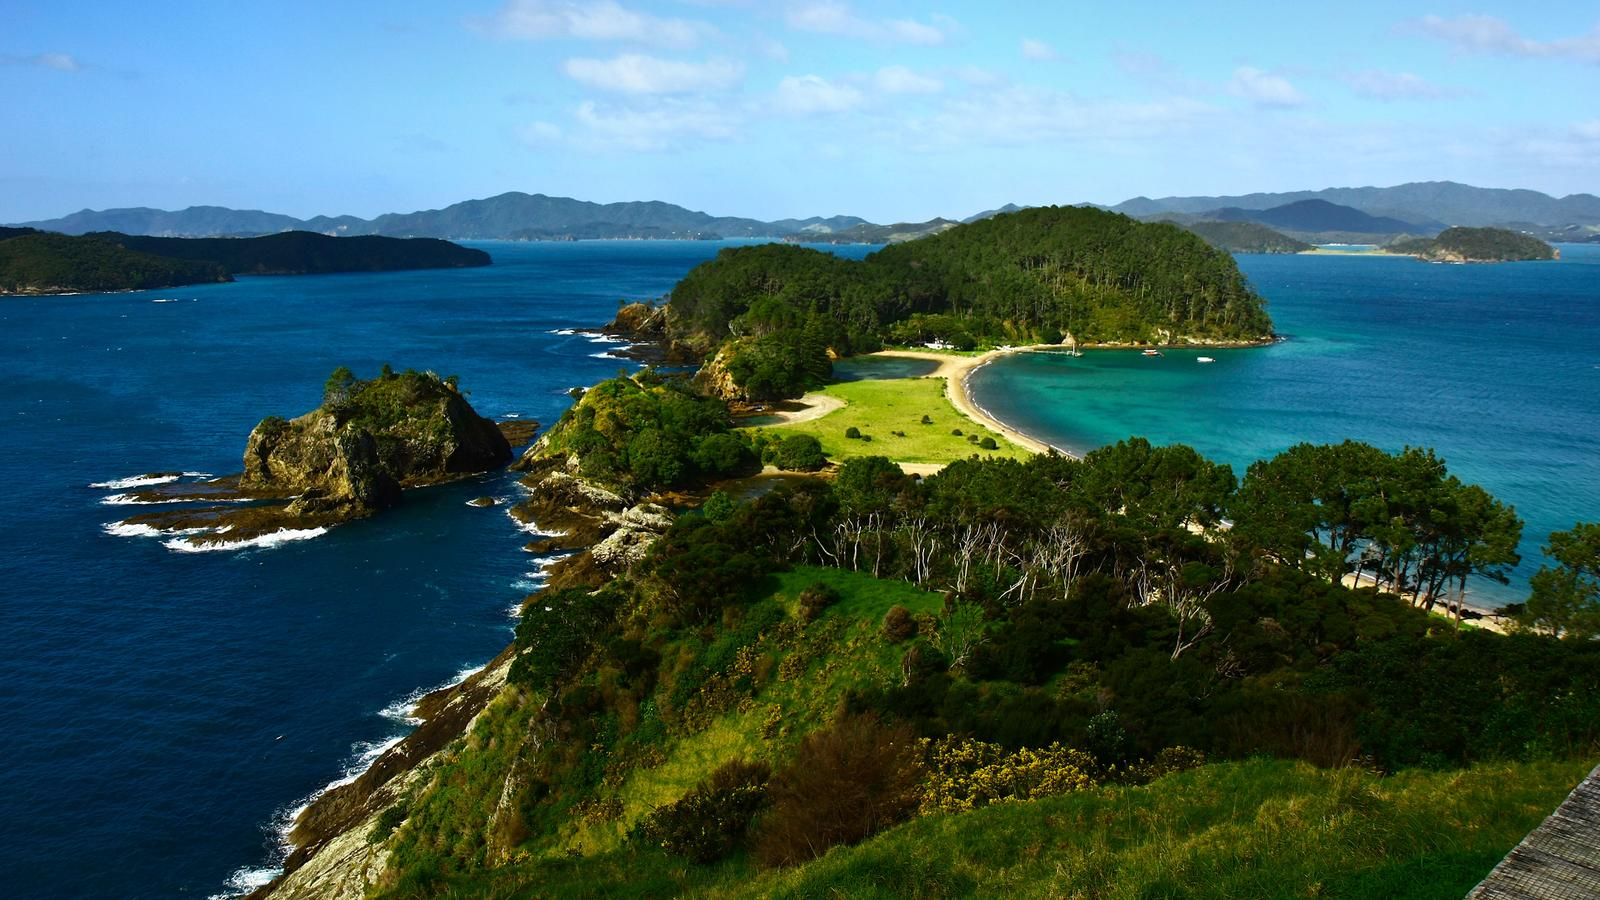 New Zealand Picture: New Zealand–The Bay Of Islands In New Zealand, Australia